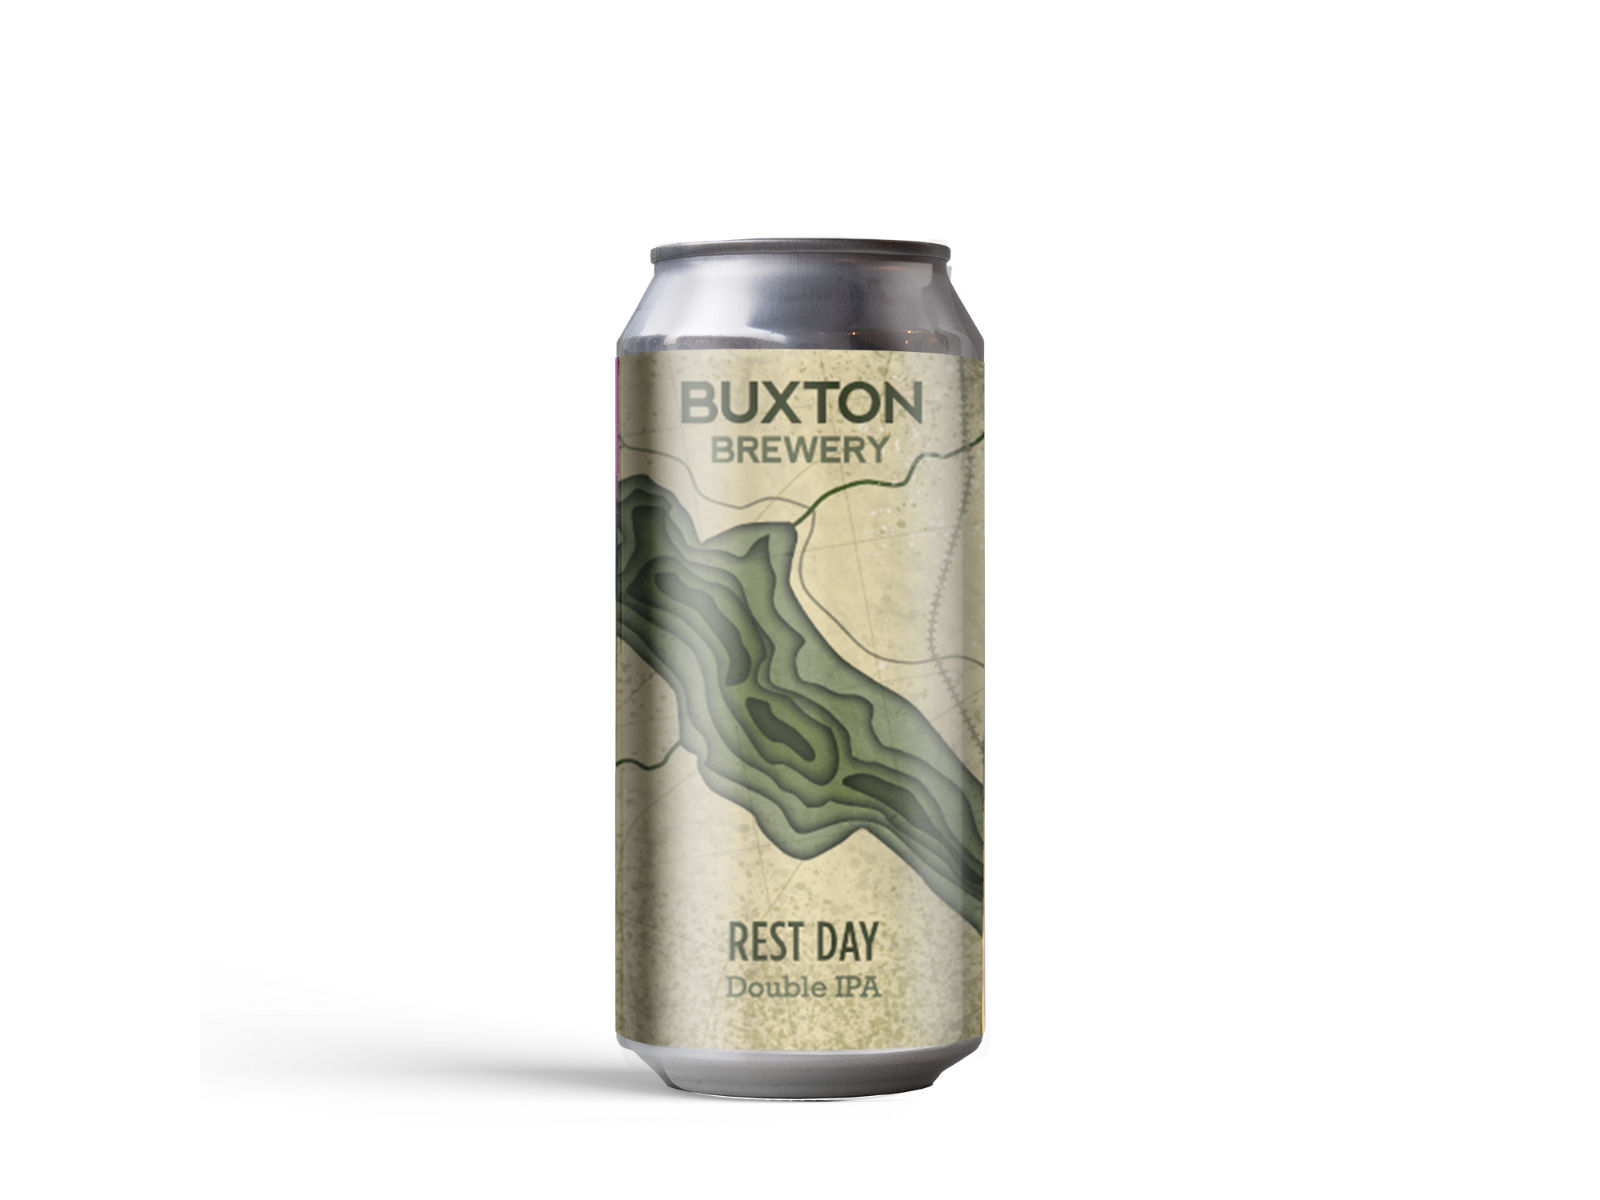 Buxton / Rest Day DIPA